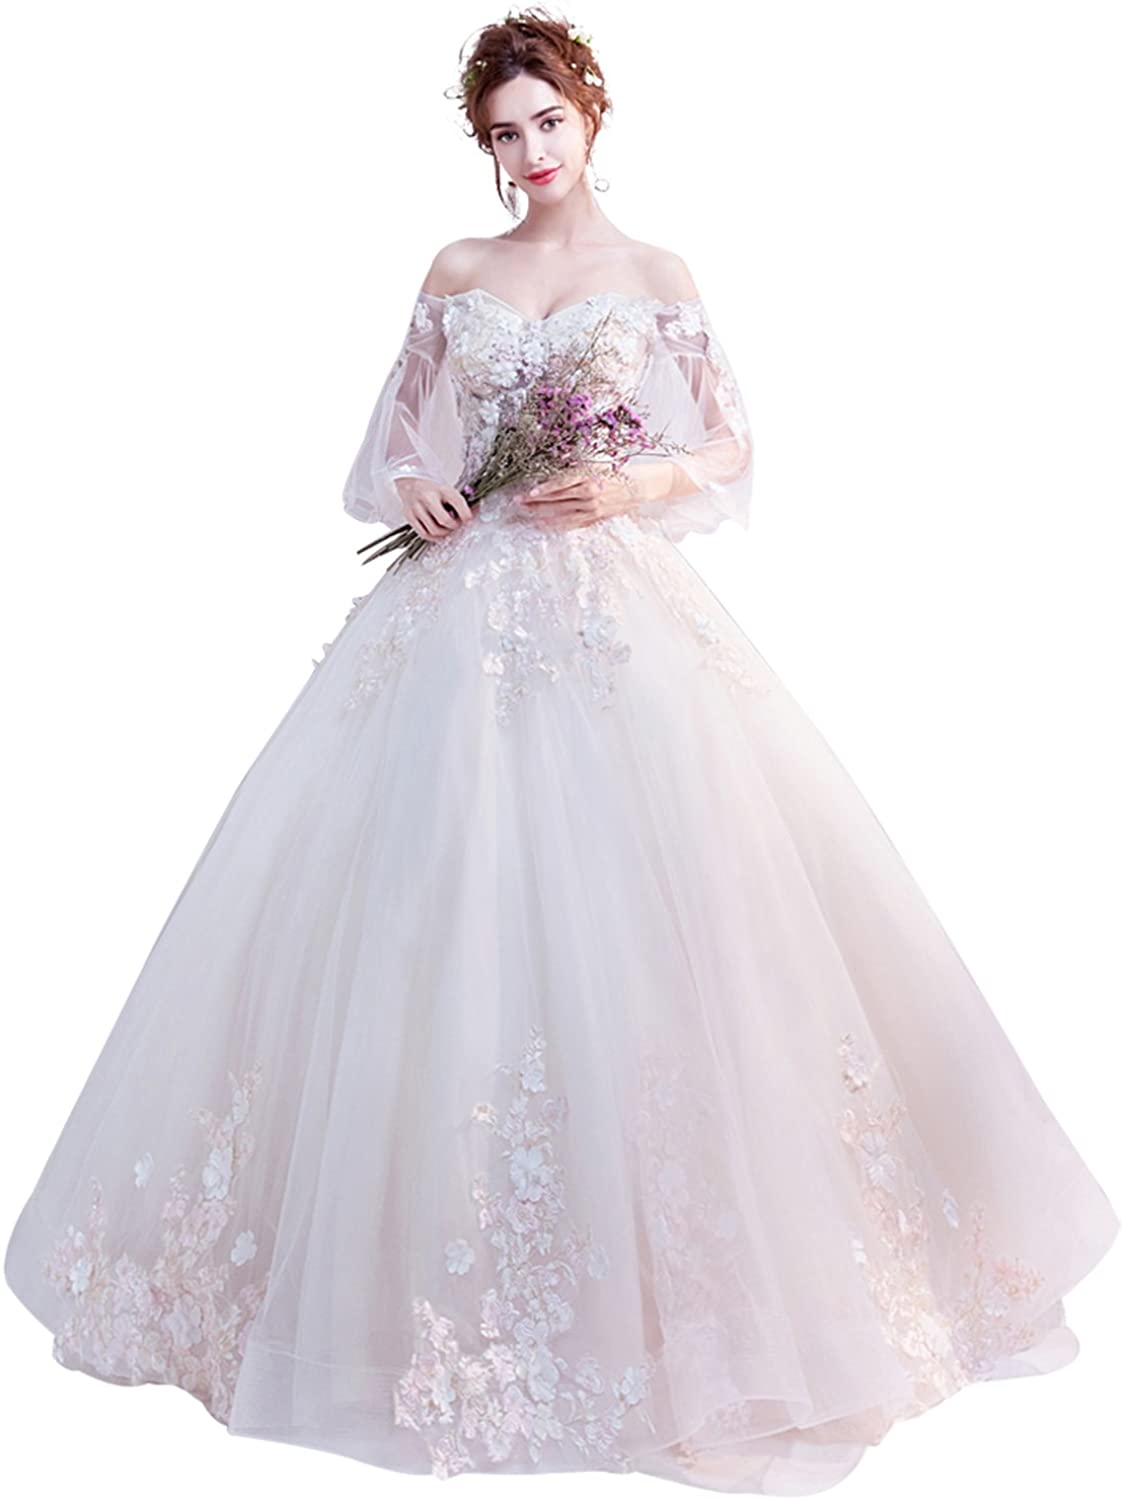 Epinkbridal Off Shoulder Ball Gown Wedding Dress with Sleeves Princess Sweet 15 Dresses Gowns